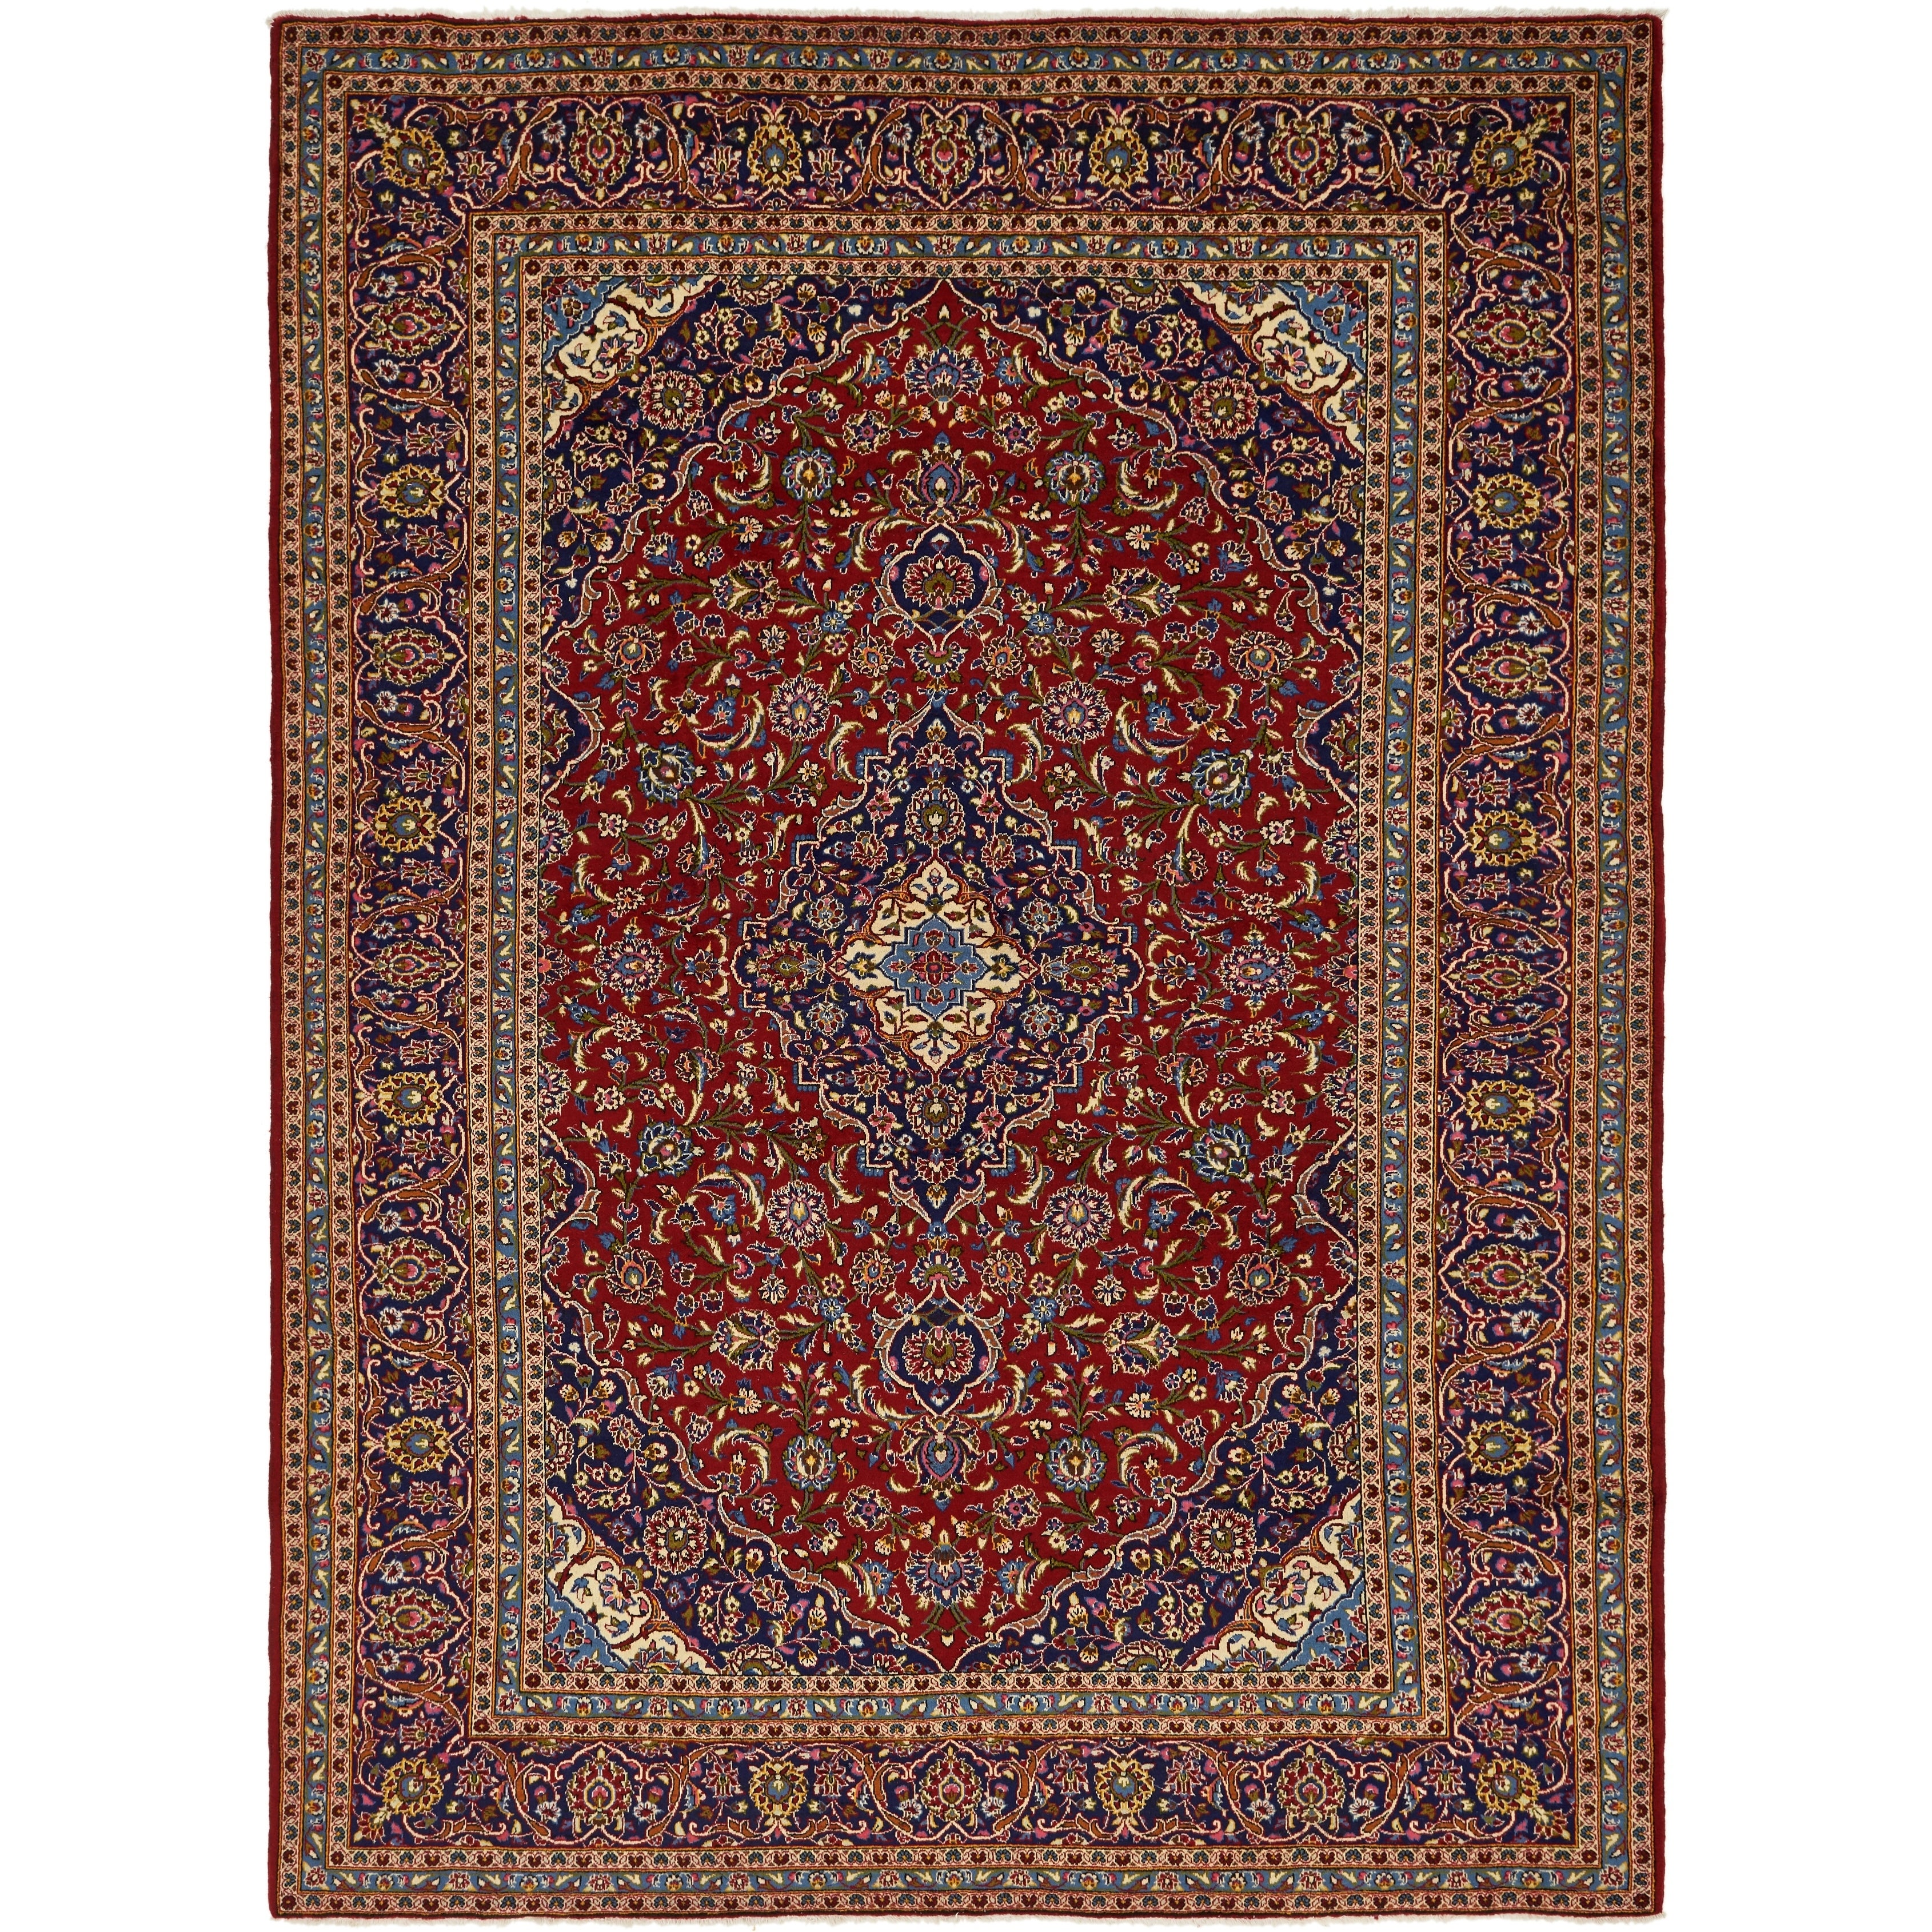 Hand Knotted Kashan Wool Area Rug - 9 8 x 13 4 (Red - 9 8 x 13 4)